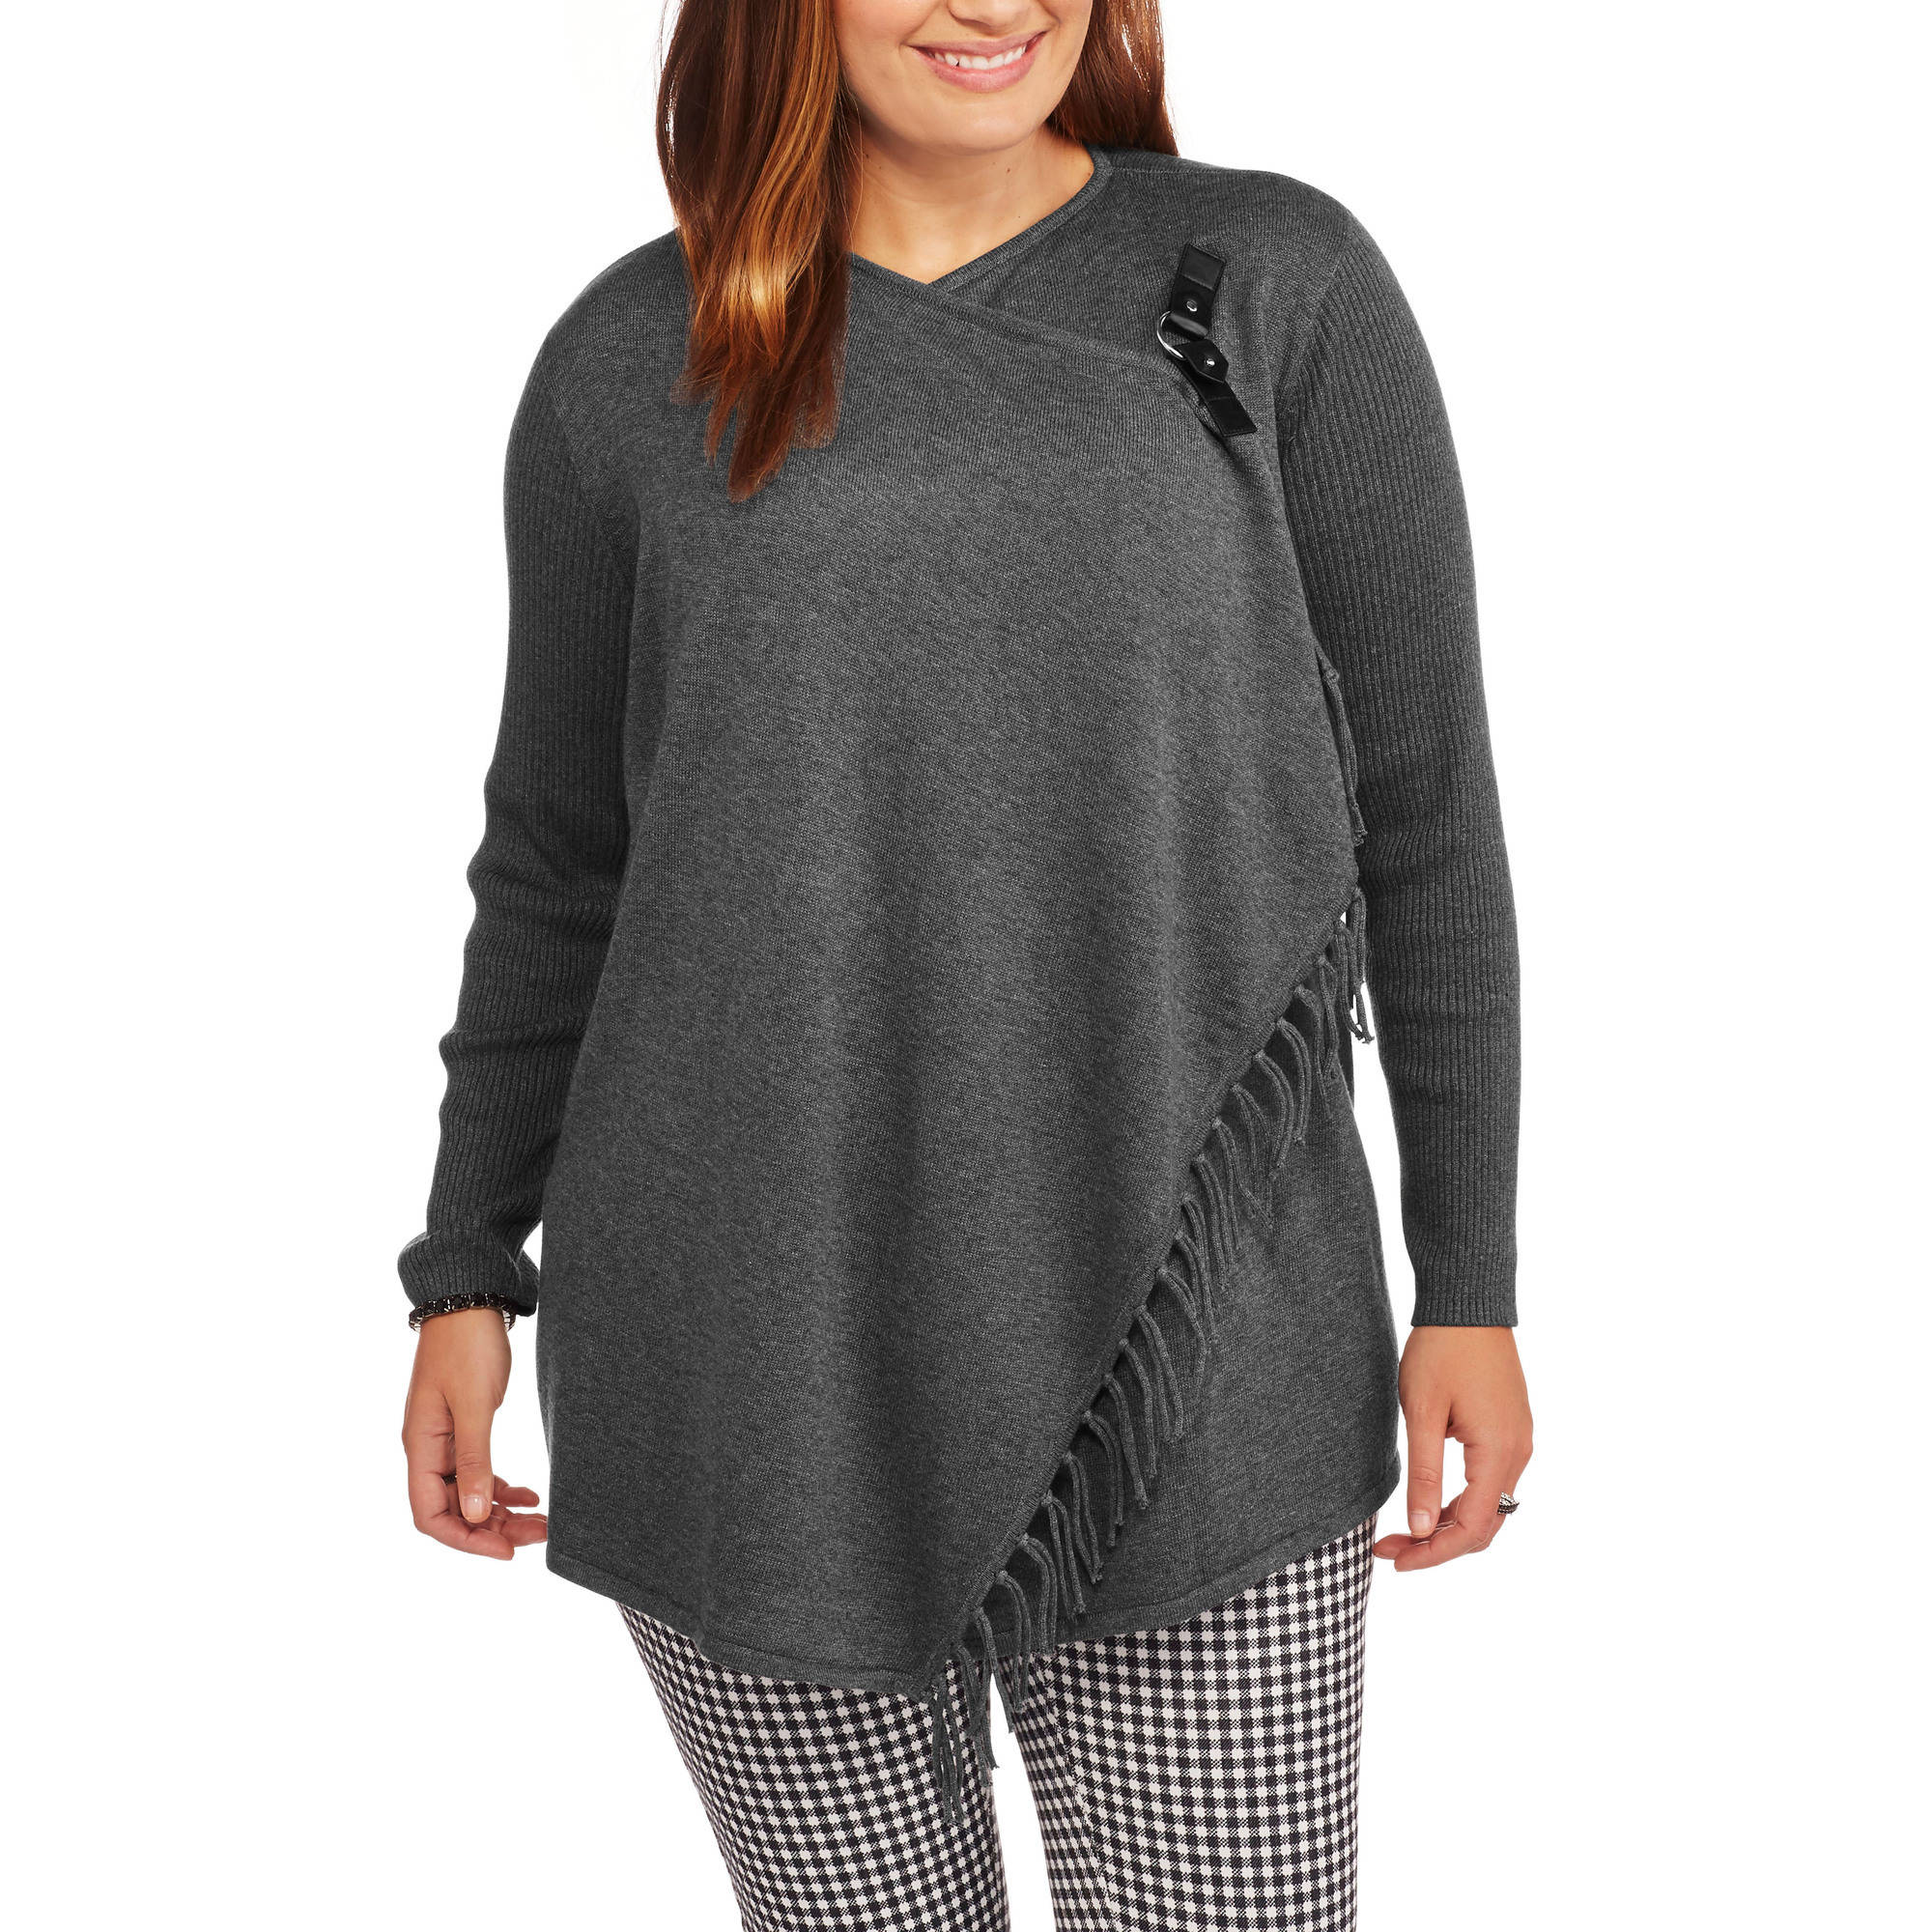 Heart and Crush Women's Plus Cardigan Sweater with Fringe